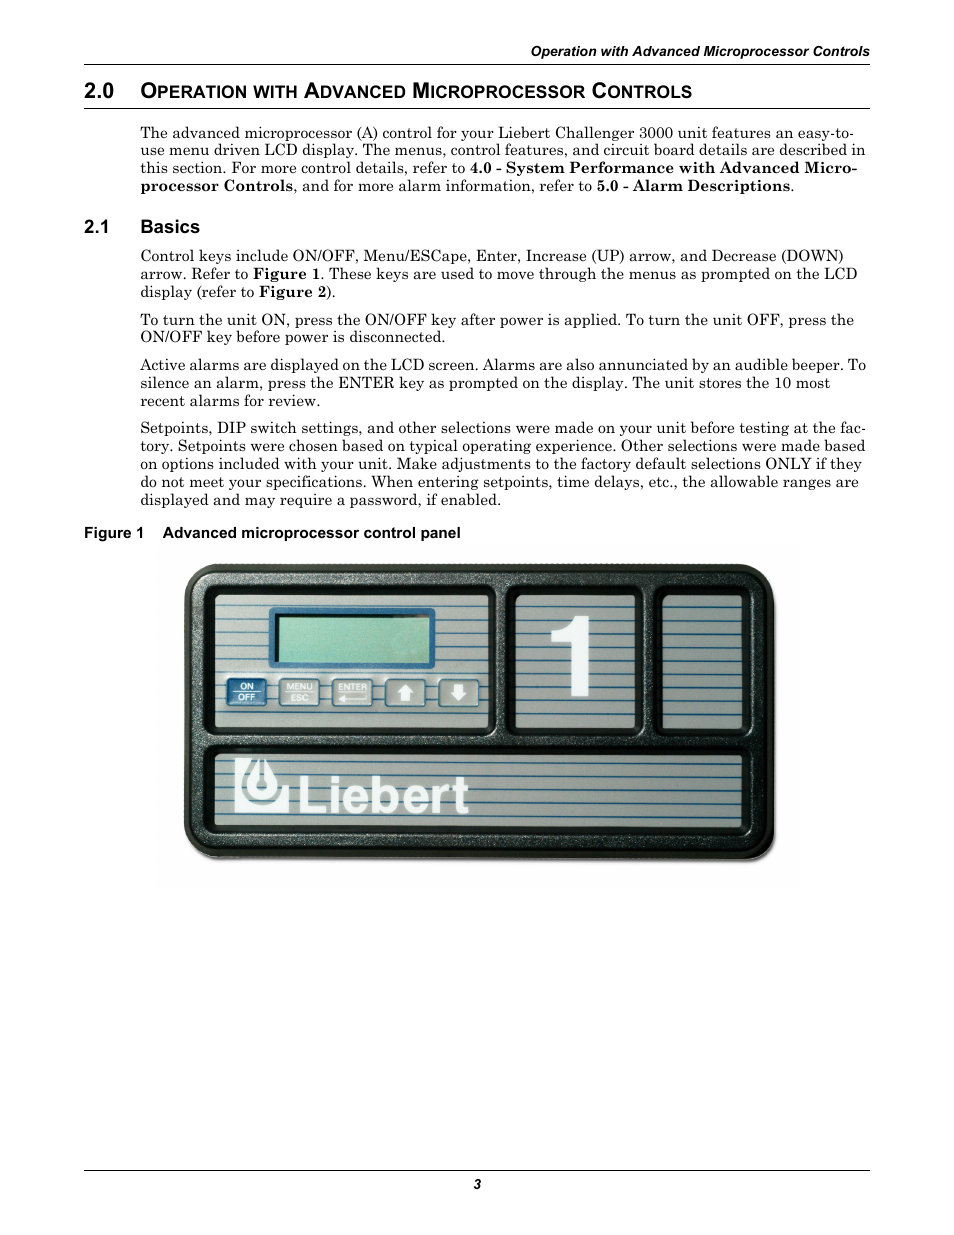 0 operation with advanced microprocessor controls, 1 basics, Figure 1  advanced microprocessor control panel | Liebert CHALLENGER 3000 User Manual  | Page 11 ...